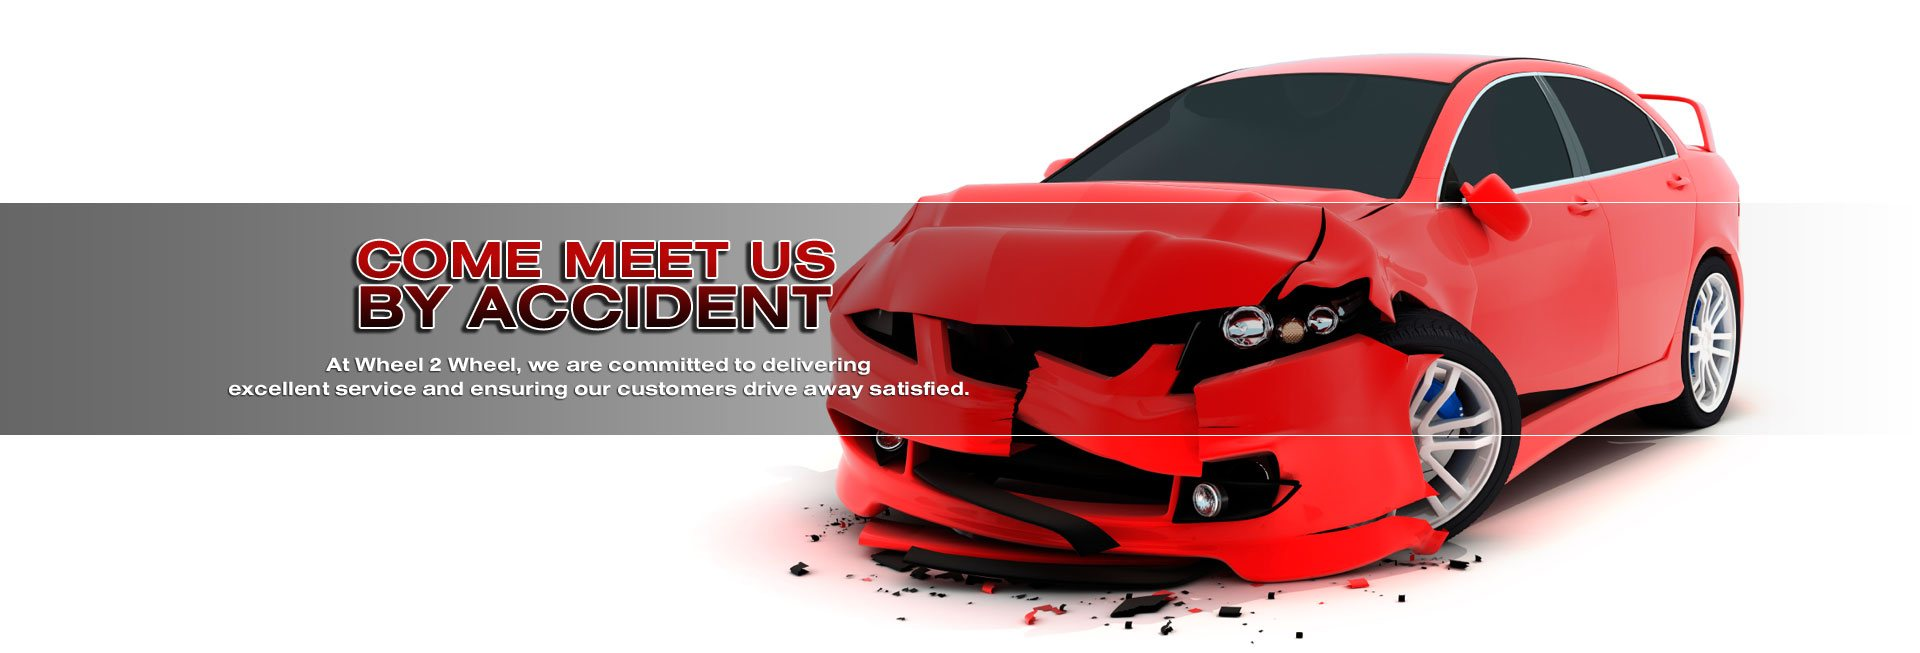 Wheel 2 Wheel Collision Repair, Auto Body Repair, Collision Repair, and Towing Service, in Oak Ridge, TN